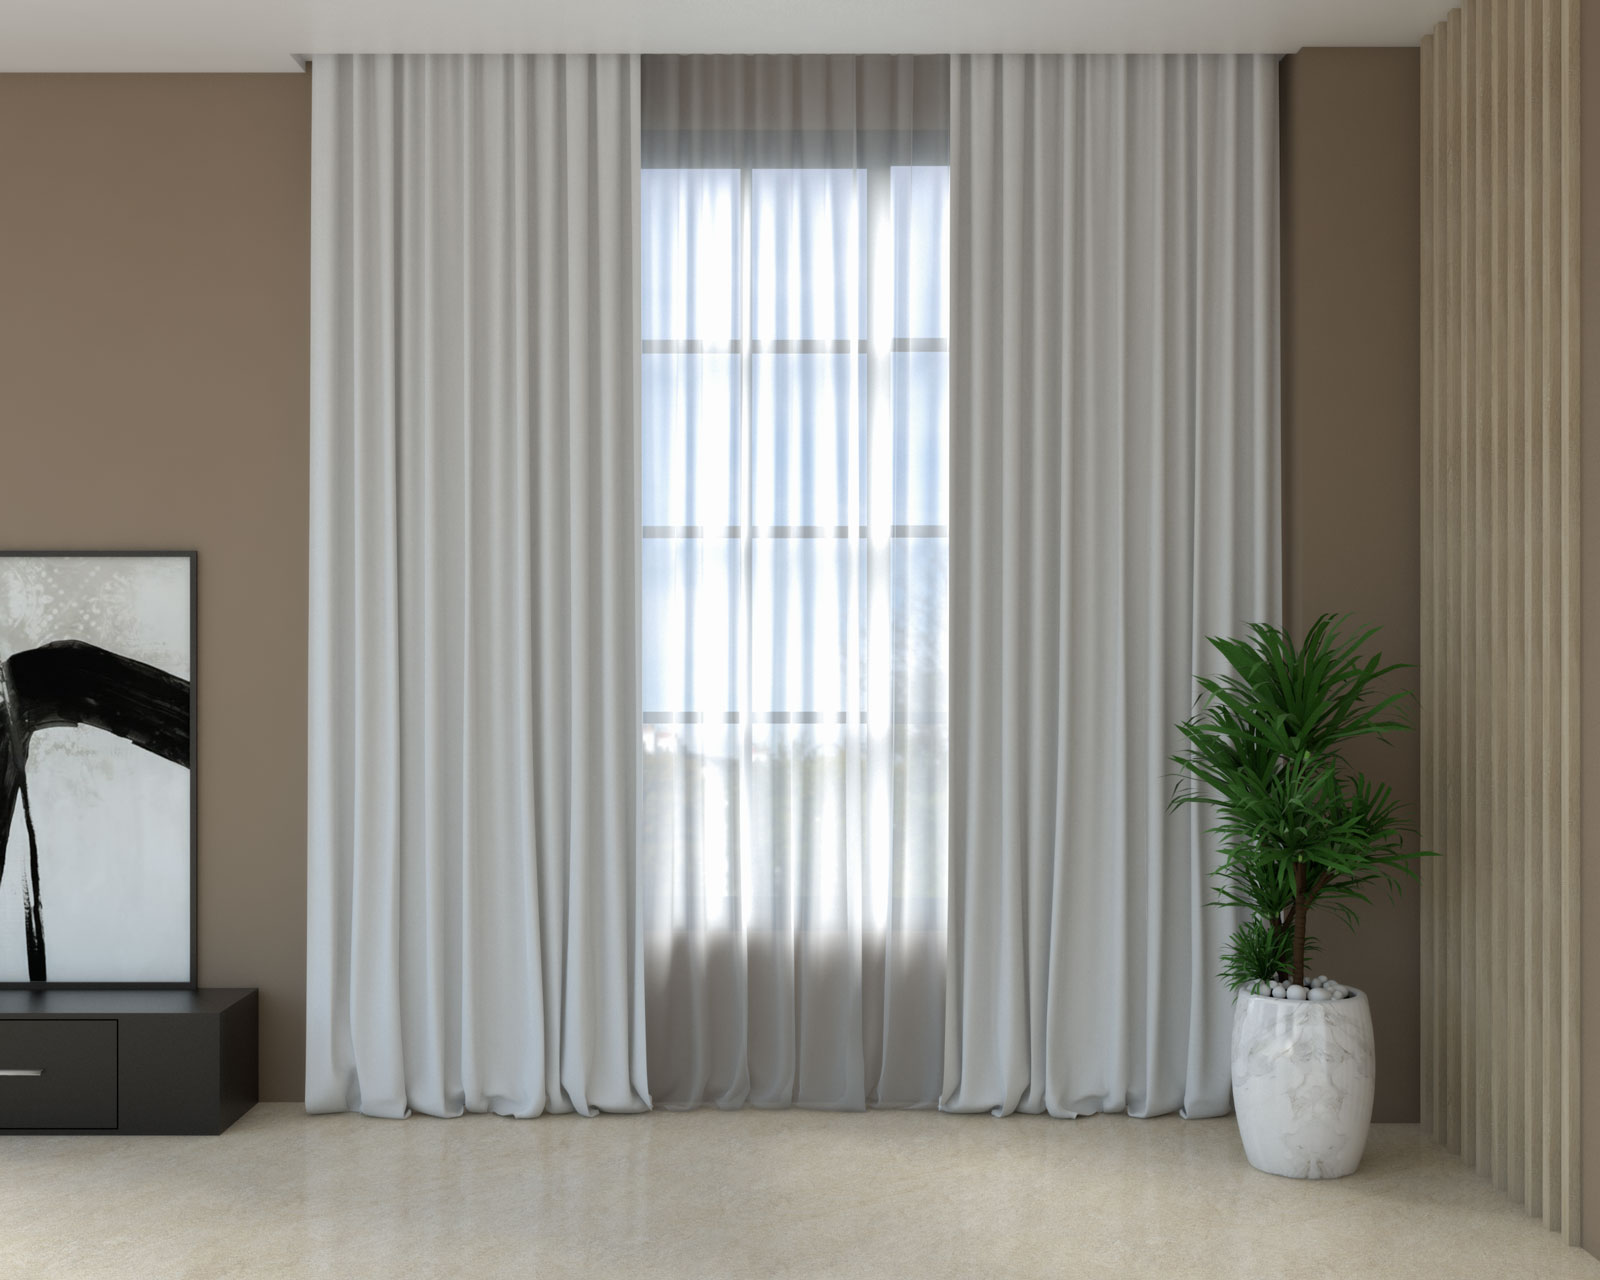 Gray curtains with brown walls